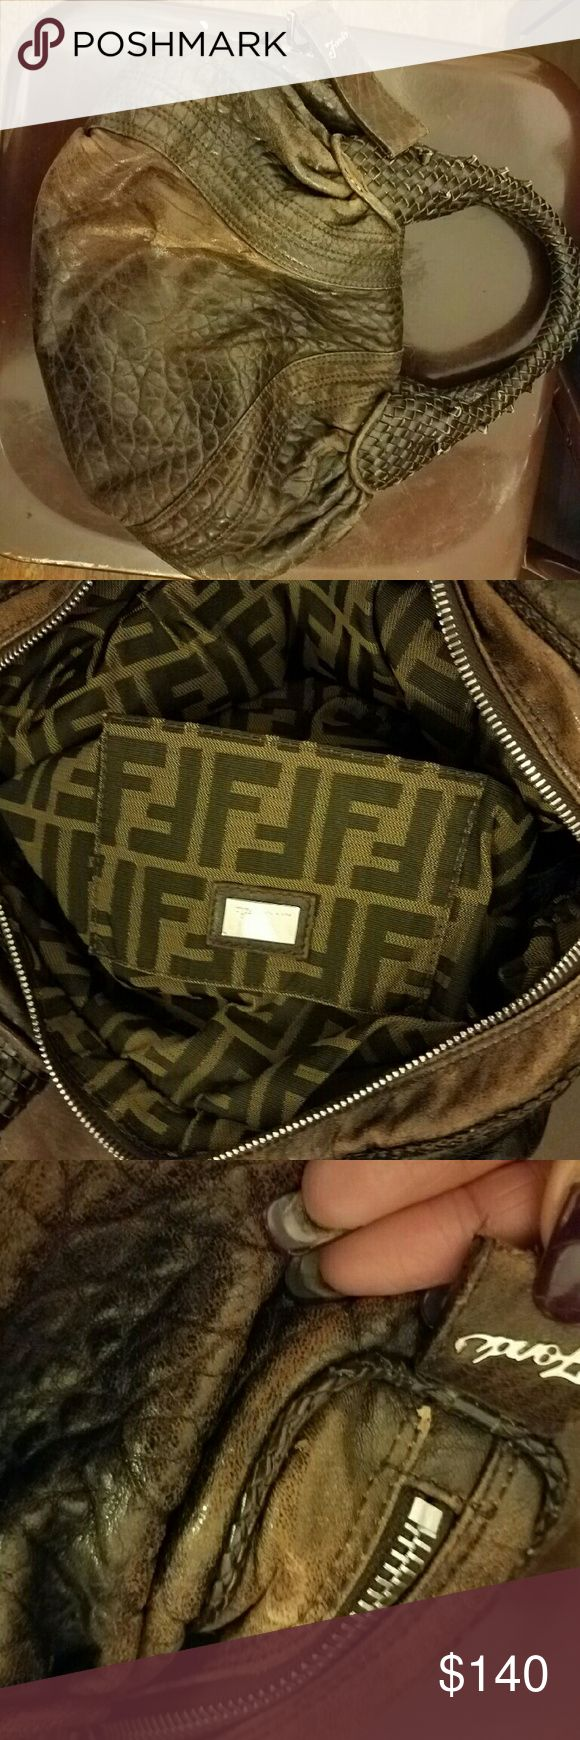 fendi small spy bag authentic used fendi spy bag has a few tears near handle  but not that noticeable in last pic Fendi Bags Hobos